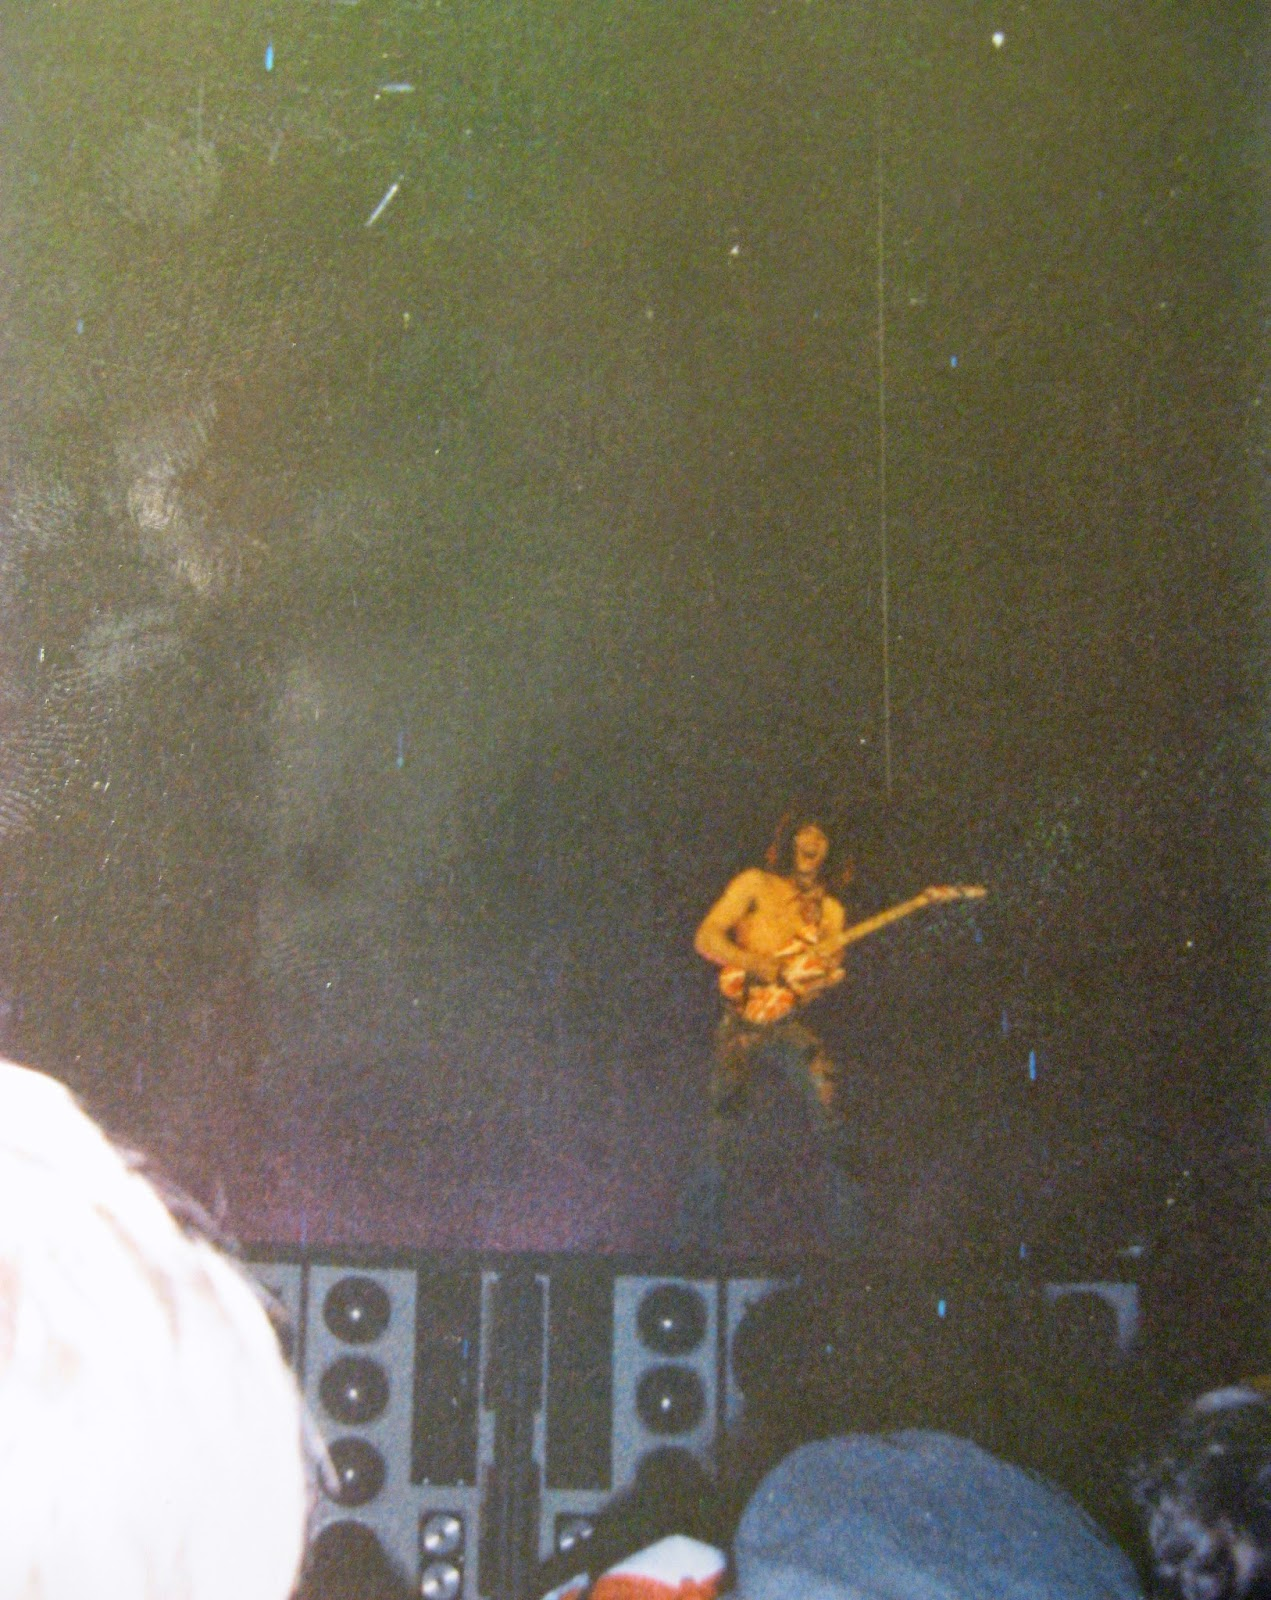 Eddie VanHalen melting our faces at Hampton Coliseum Feb 15, 1984